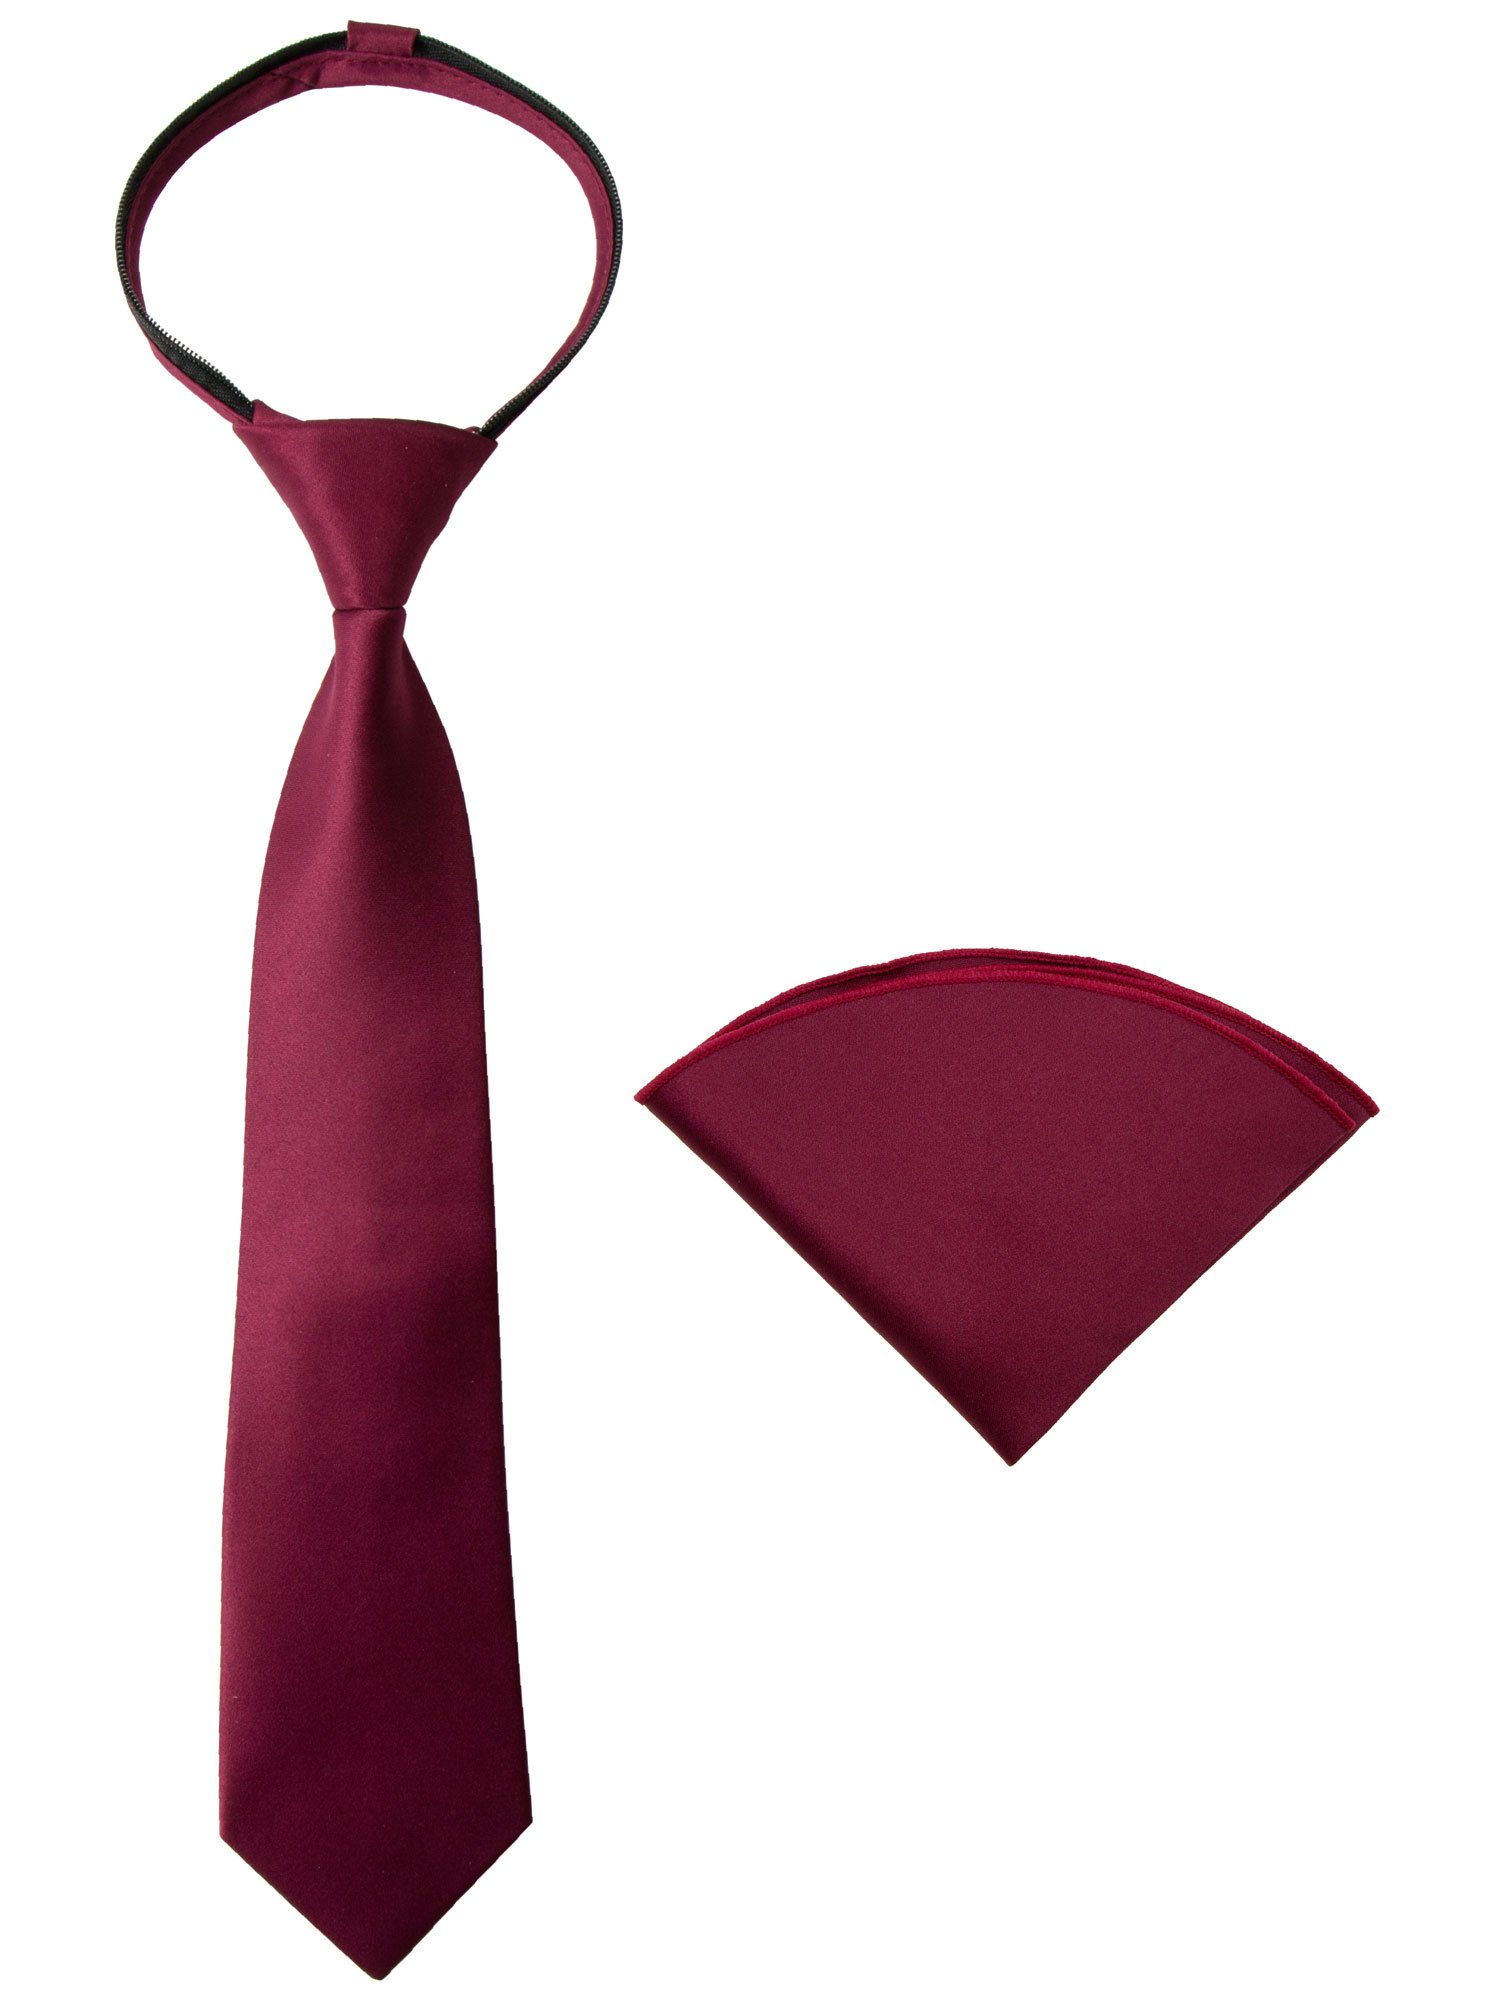 Spring Notion Boys' Satin Zipper Necktie and Handkerchief Set Large Burgundy by Spring Notion